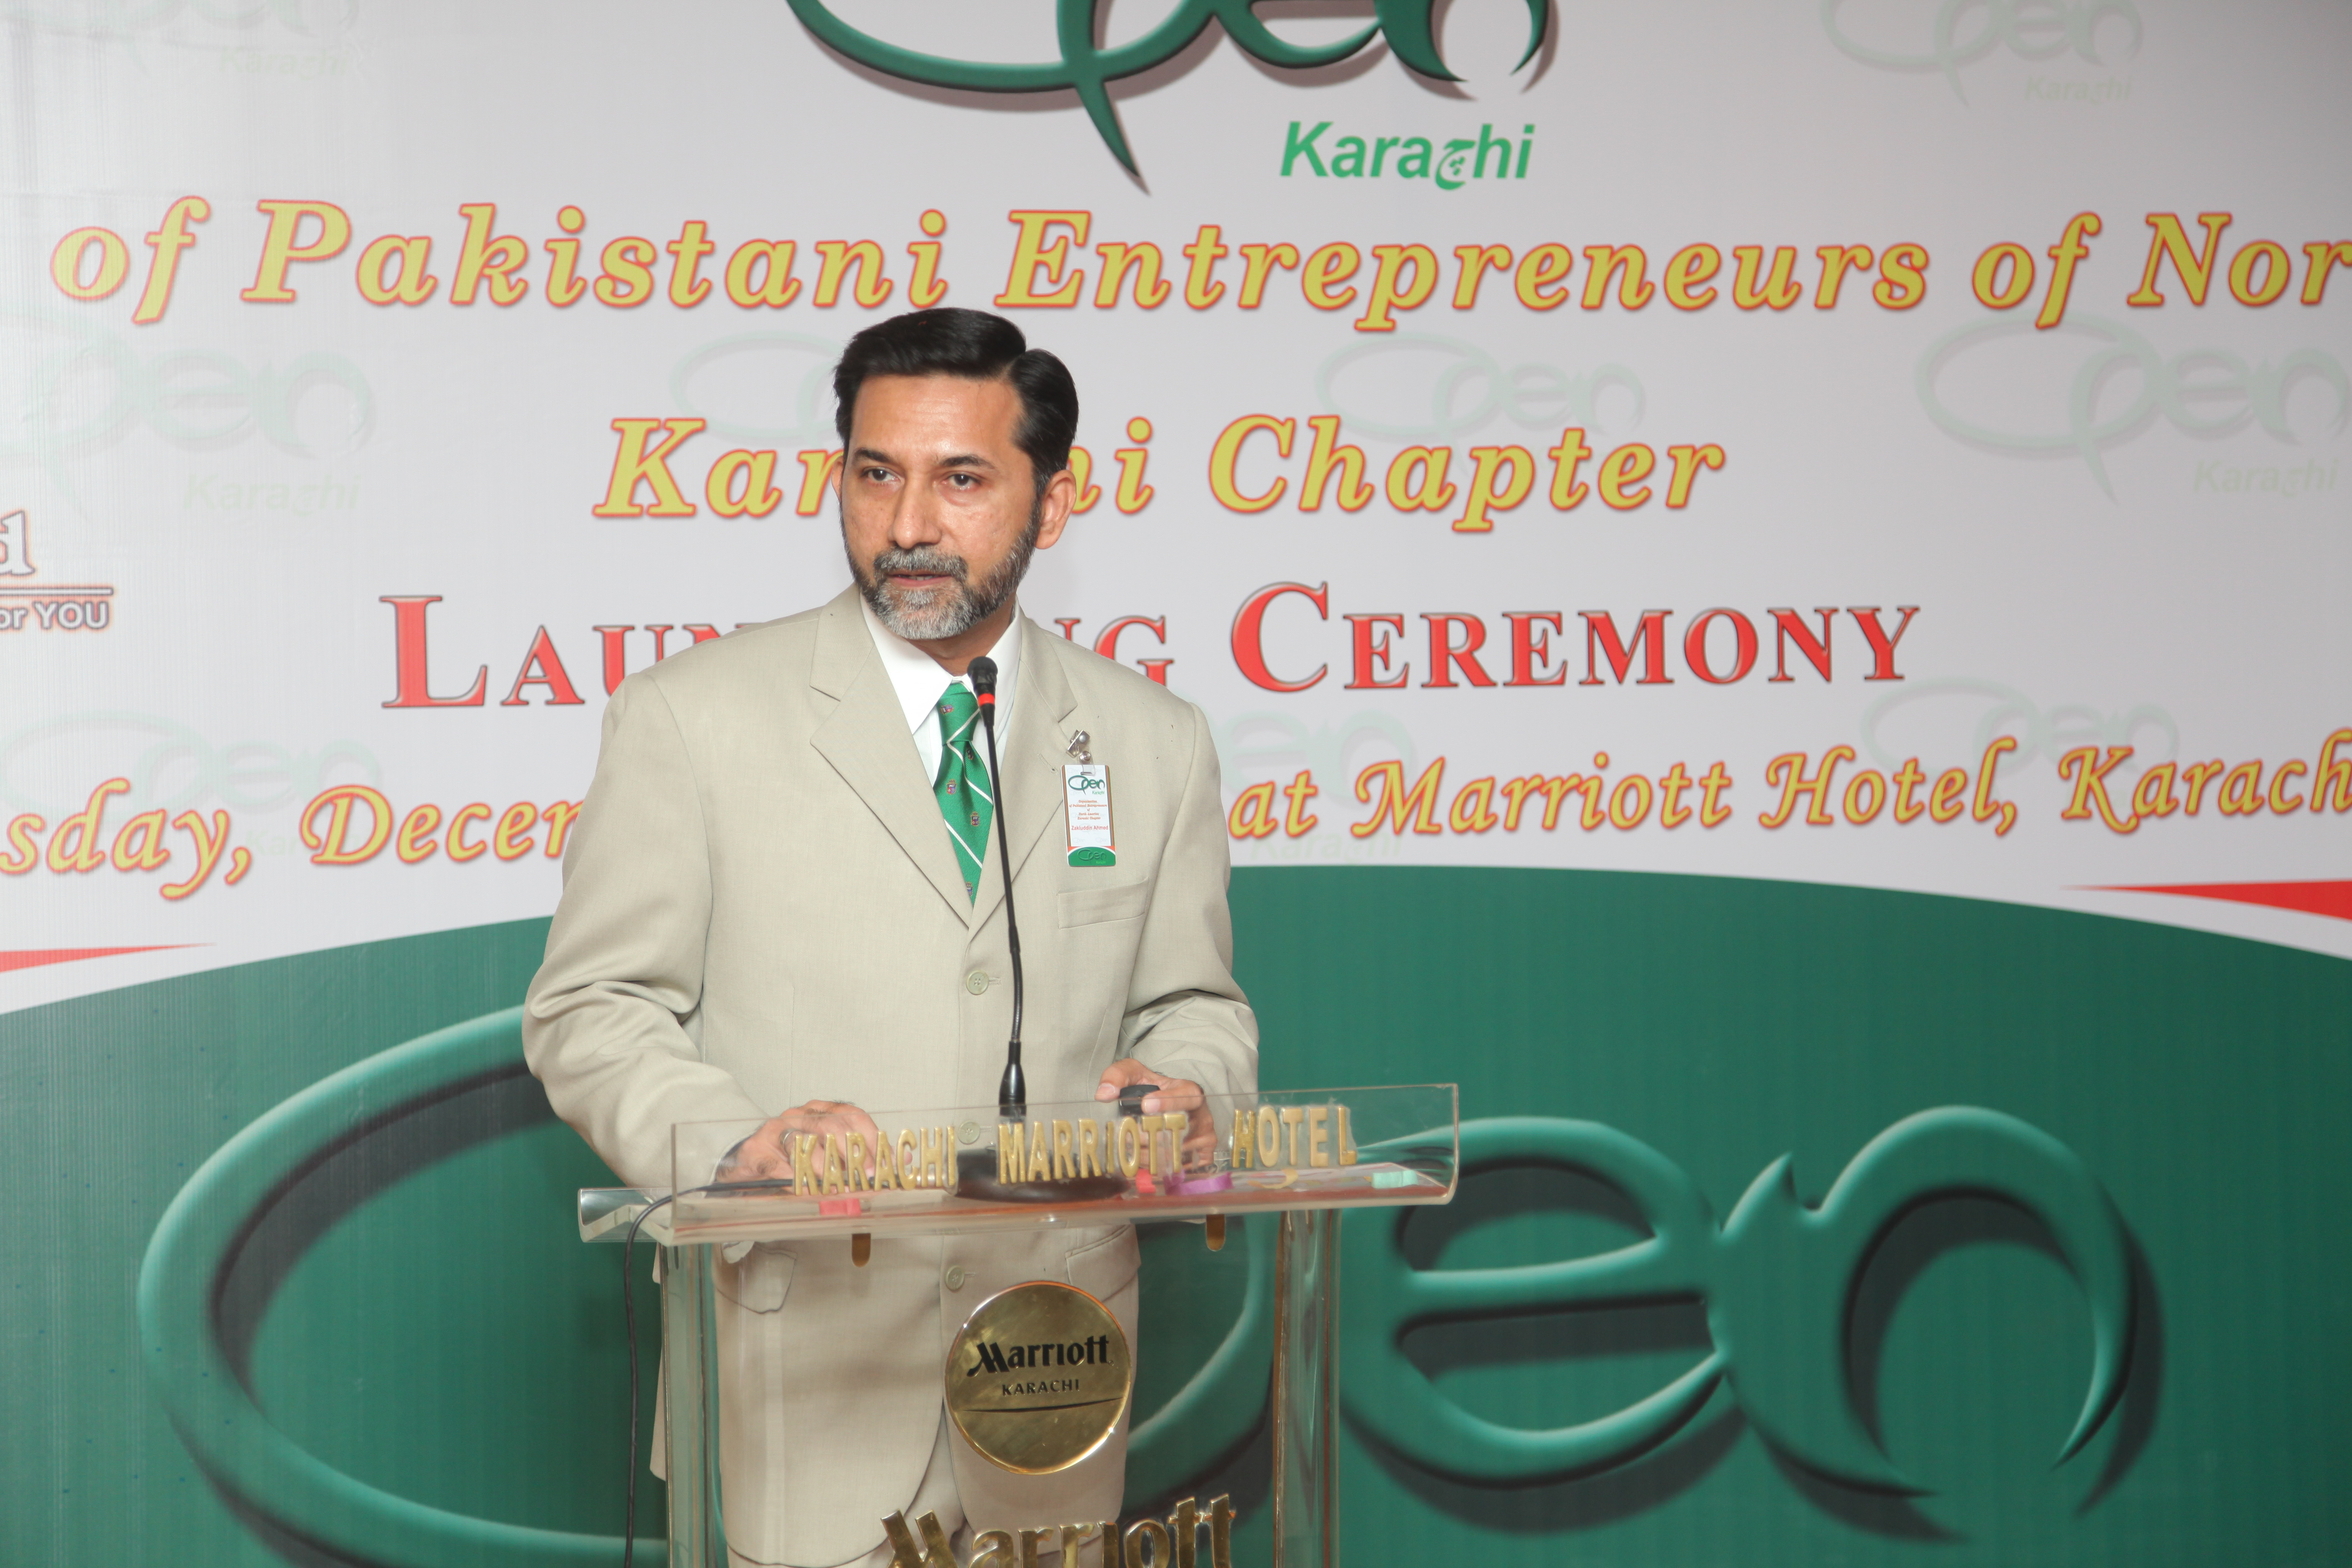 OPEN Karachi Launch Event